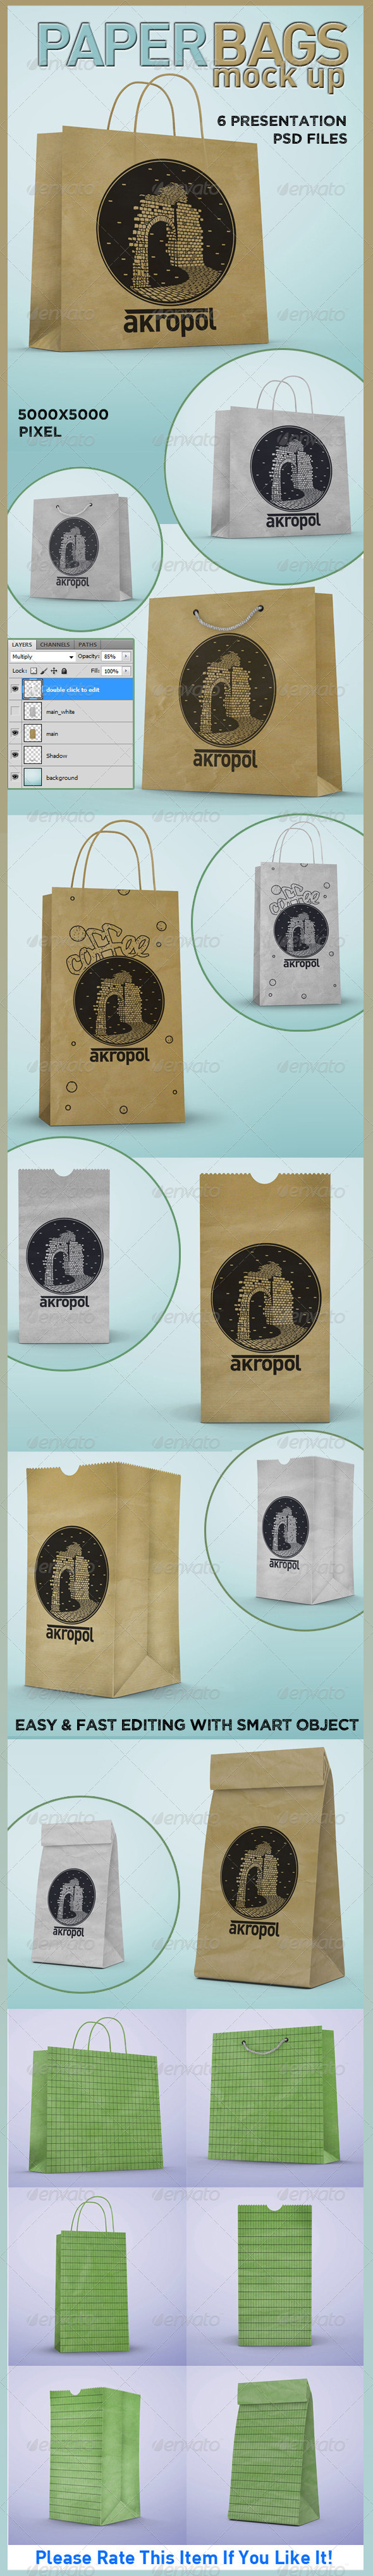 GraphicRiver Paper Bags Mock Up 5320070